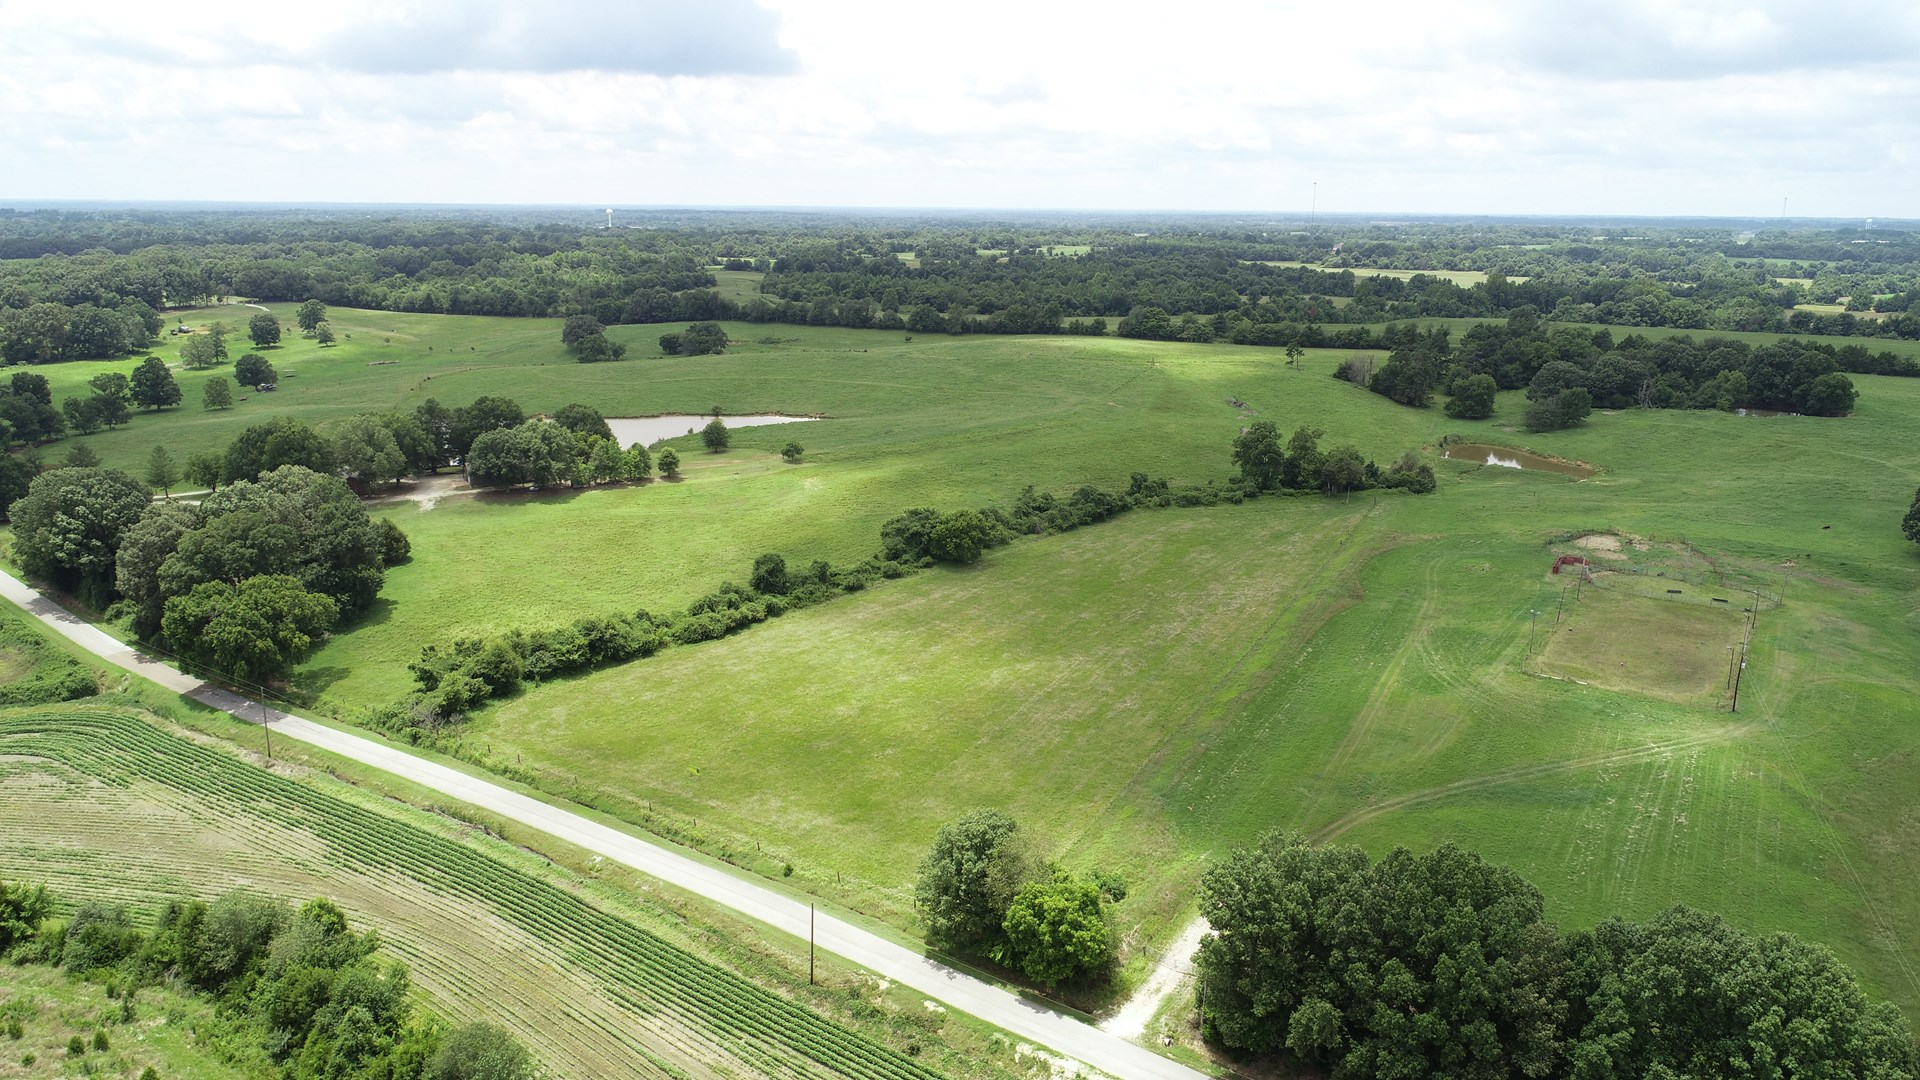 Horse/Cattle Farm for Sale in Brownsville, TN.